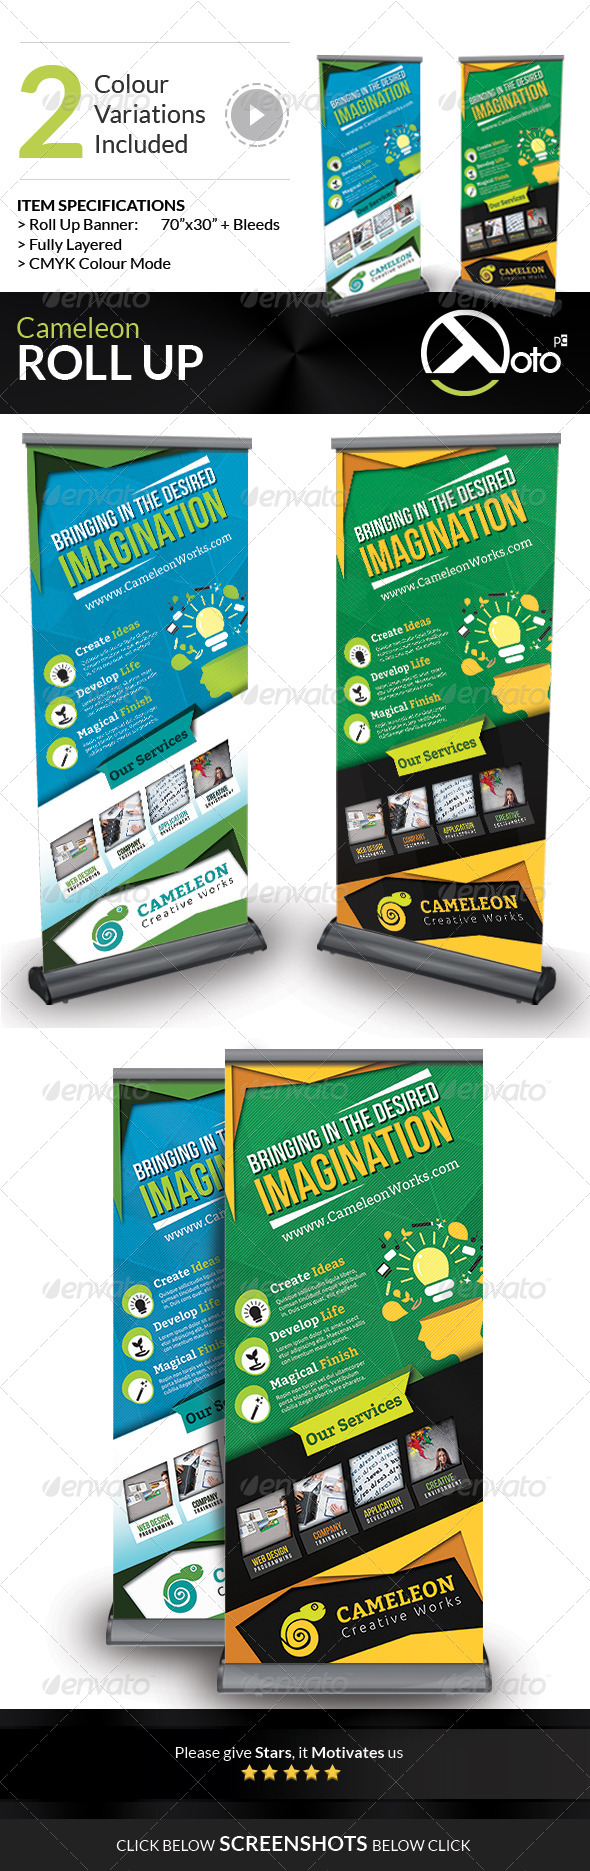 GraphicRiver Cameleon Works Roll Up Banners 6653097